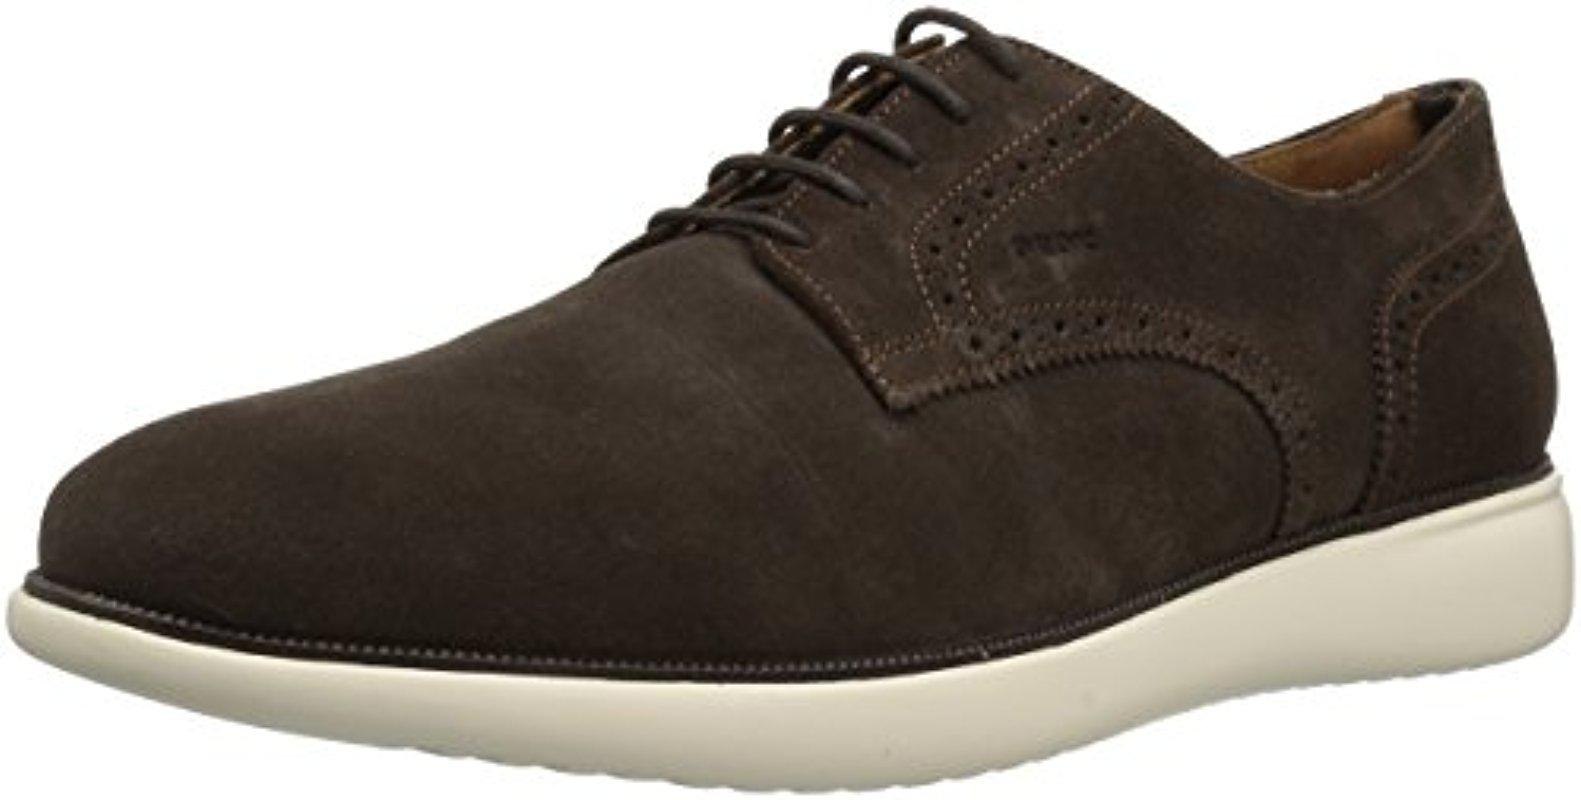 Men's Winfred 1 Oxford